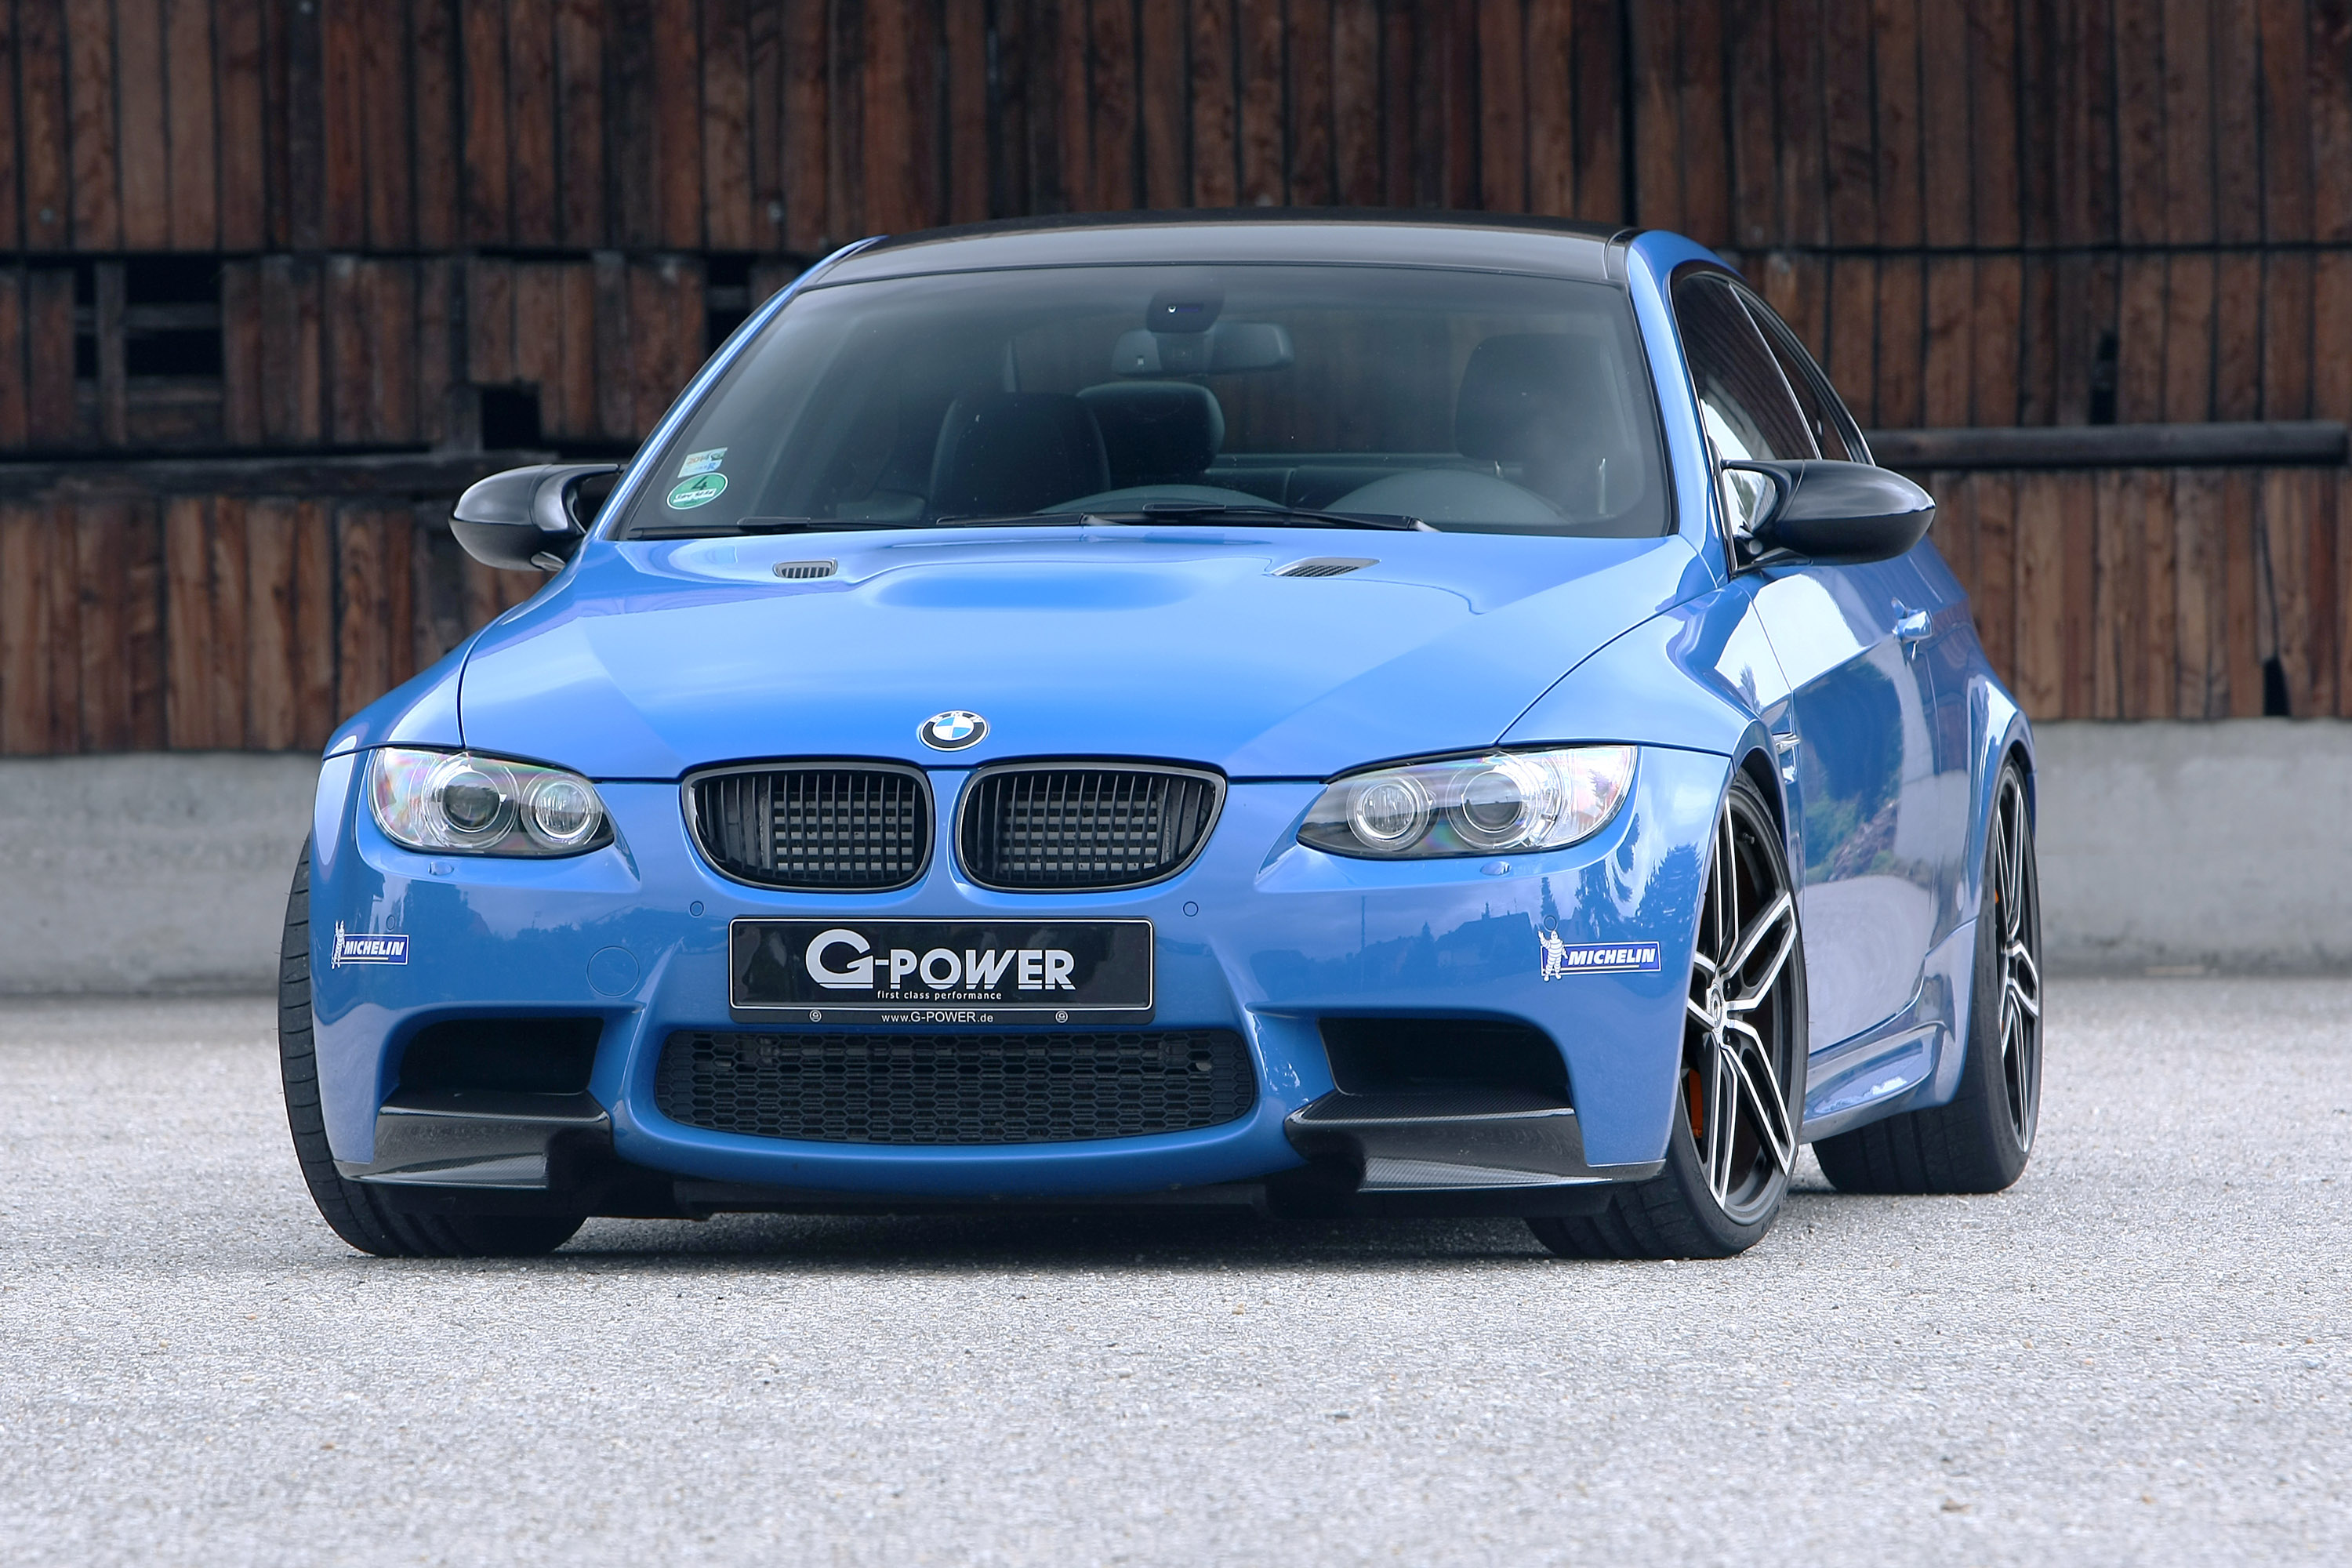 2015 G-Power BMW M3 E92 V8 Supercharger - HD Pictures ...